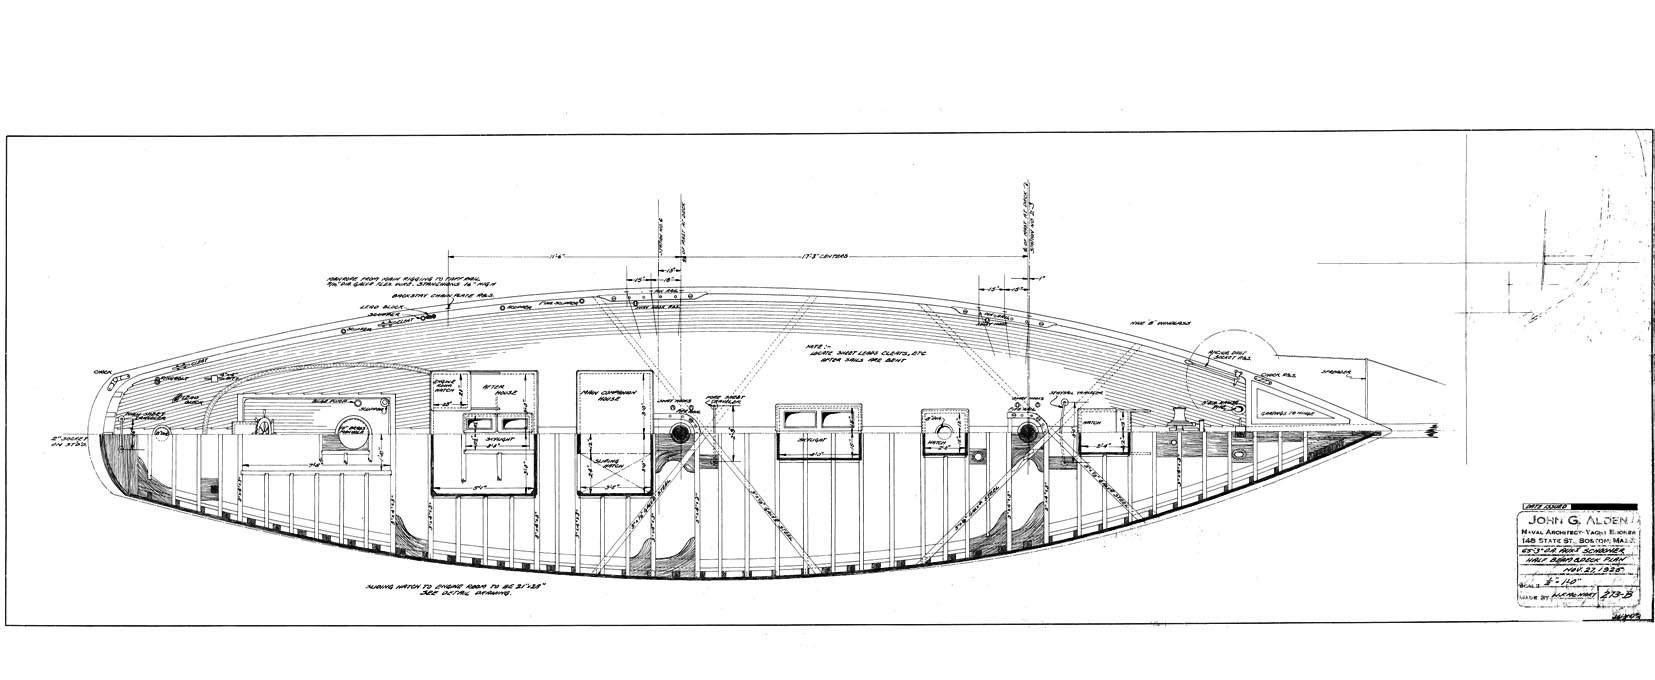 The Deck Plan